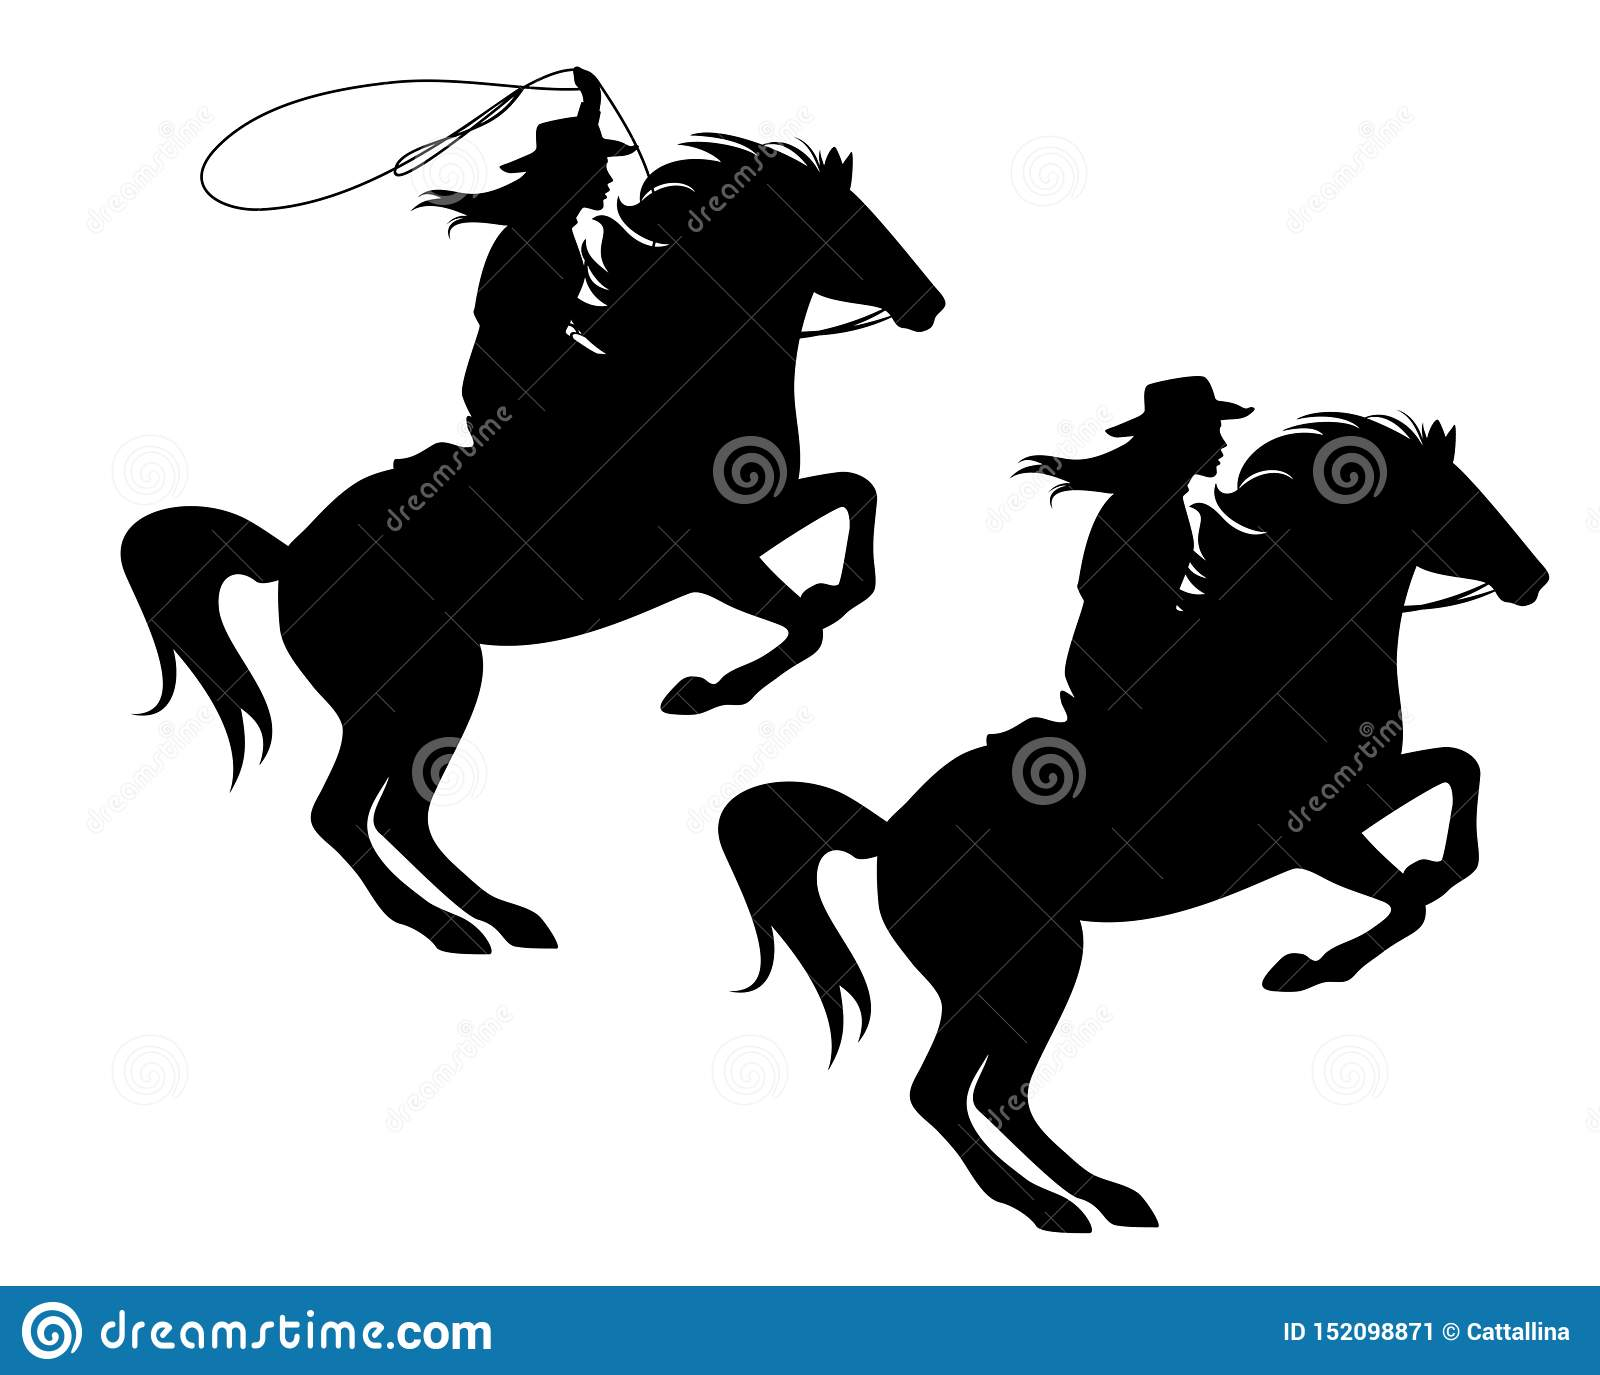 Cowgirl Silhouette Stock Illustrations 380 Cowgirl Silhouette Stock Illustrations Vectors Clipart Dreamstime